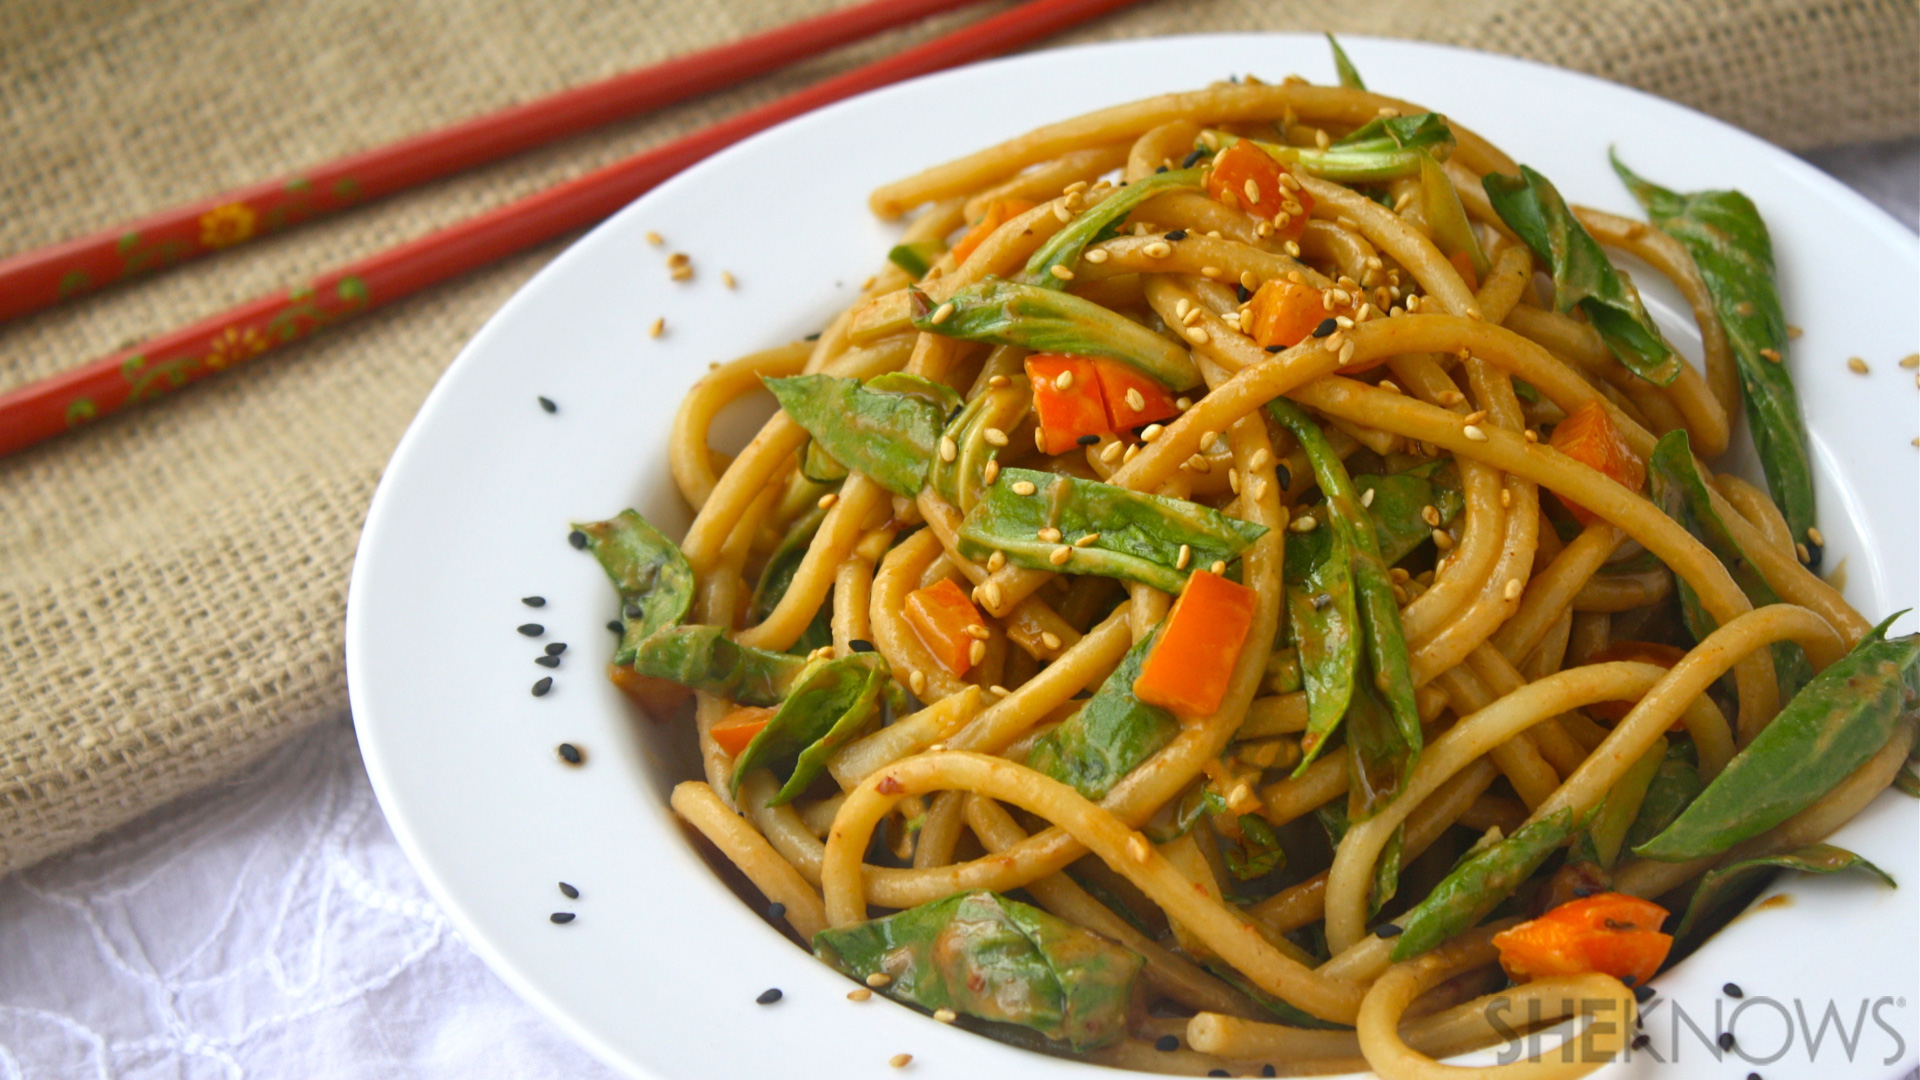 Cold noodle & bok choy salad with zesty sesame dressing